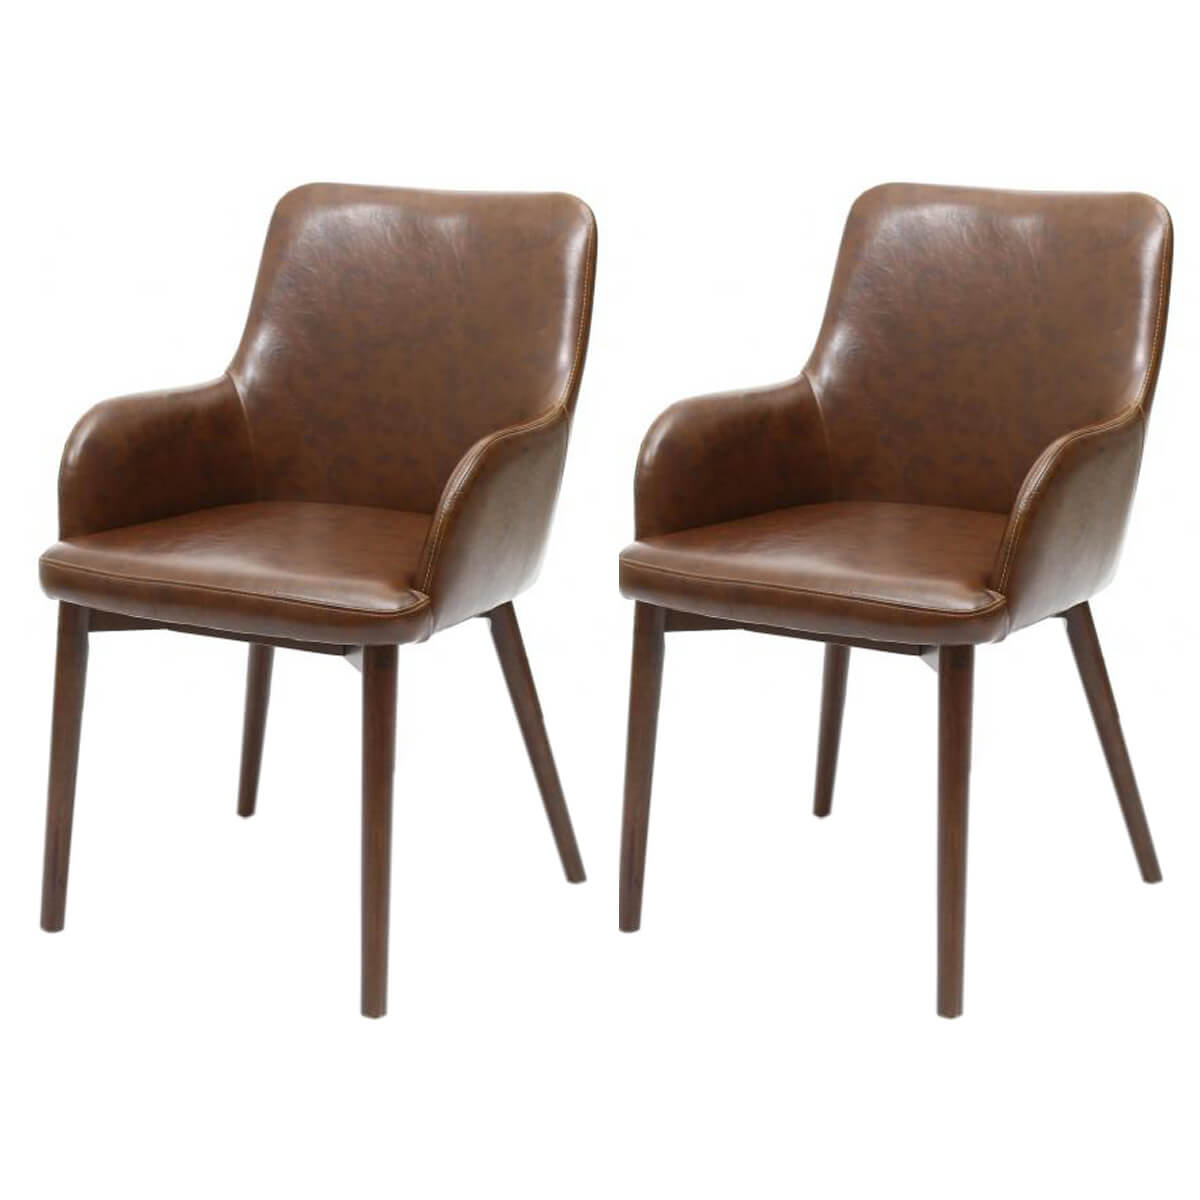 Sidcup Dining Chairs Vintage Brown Leather (Pair)